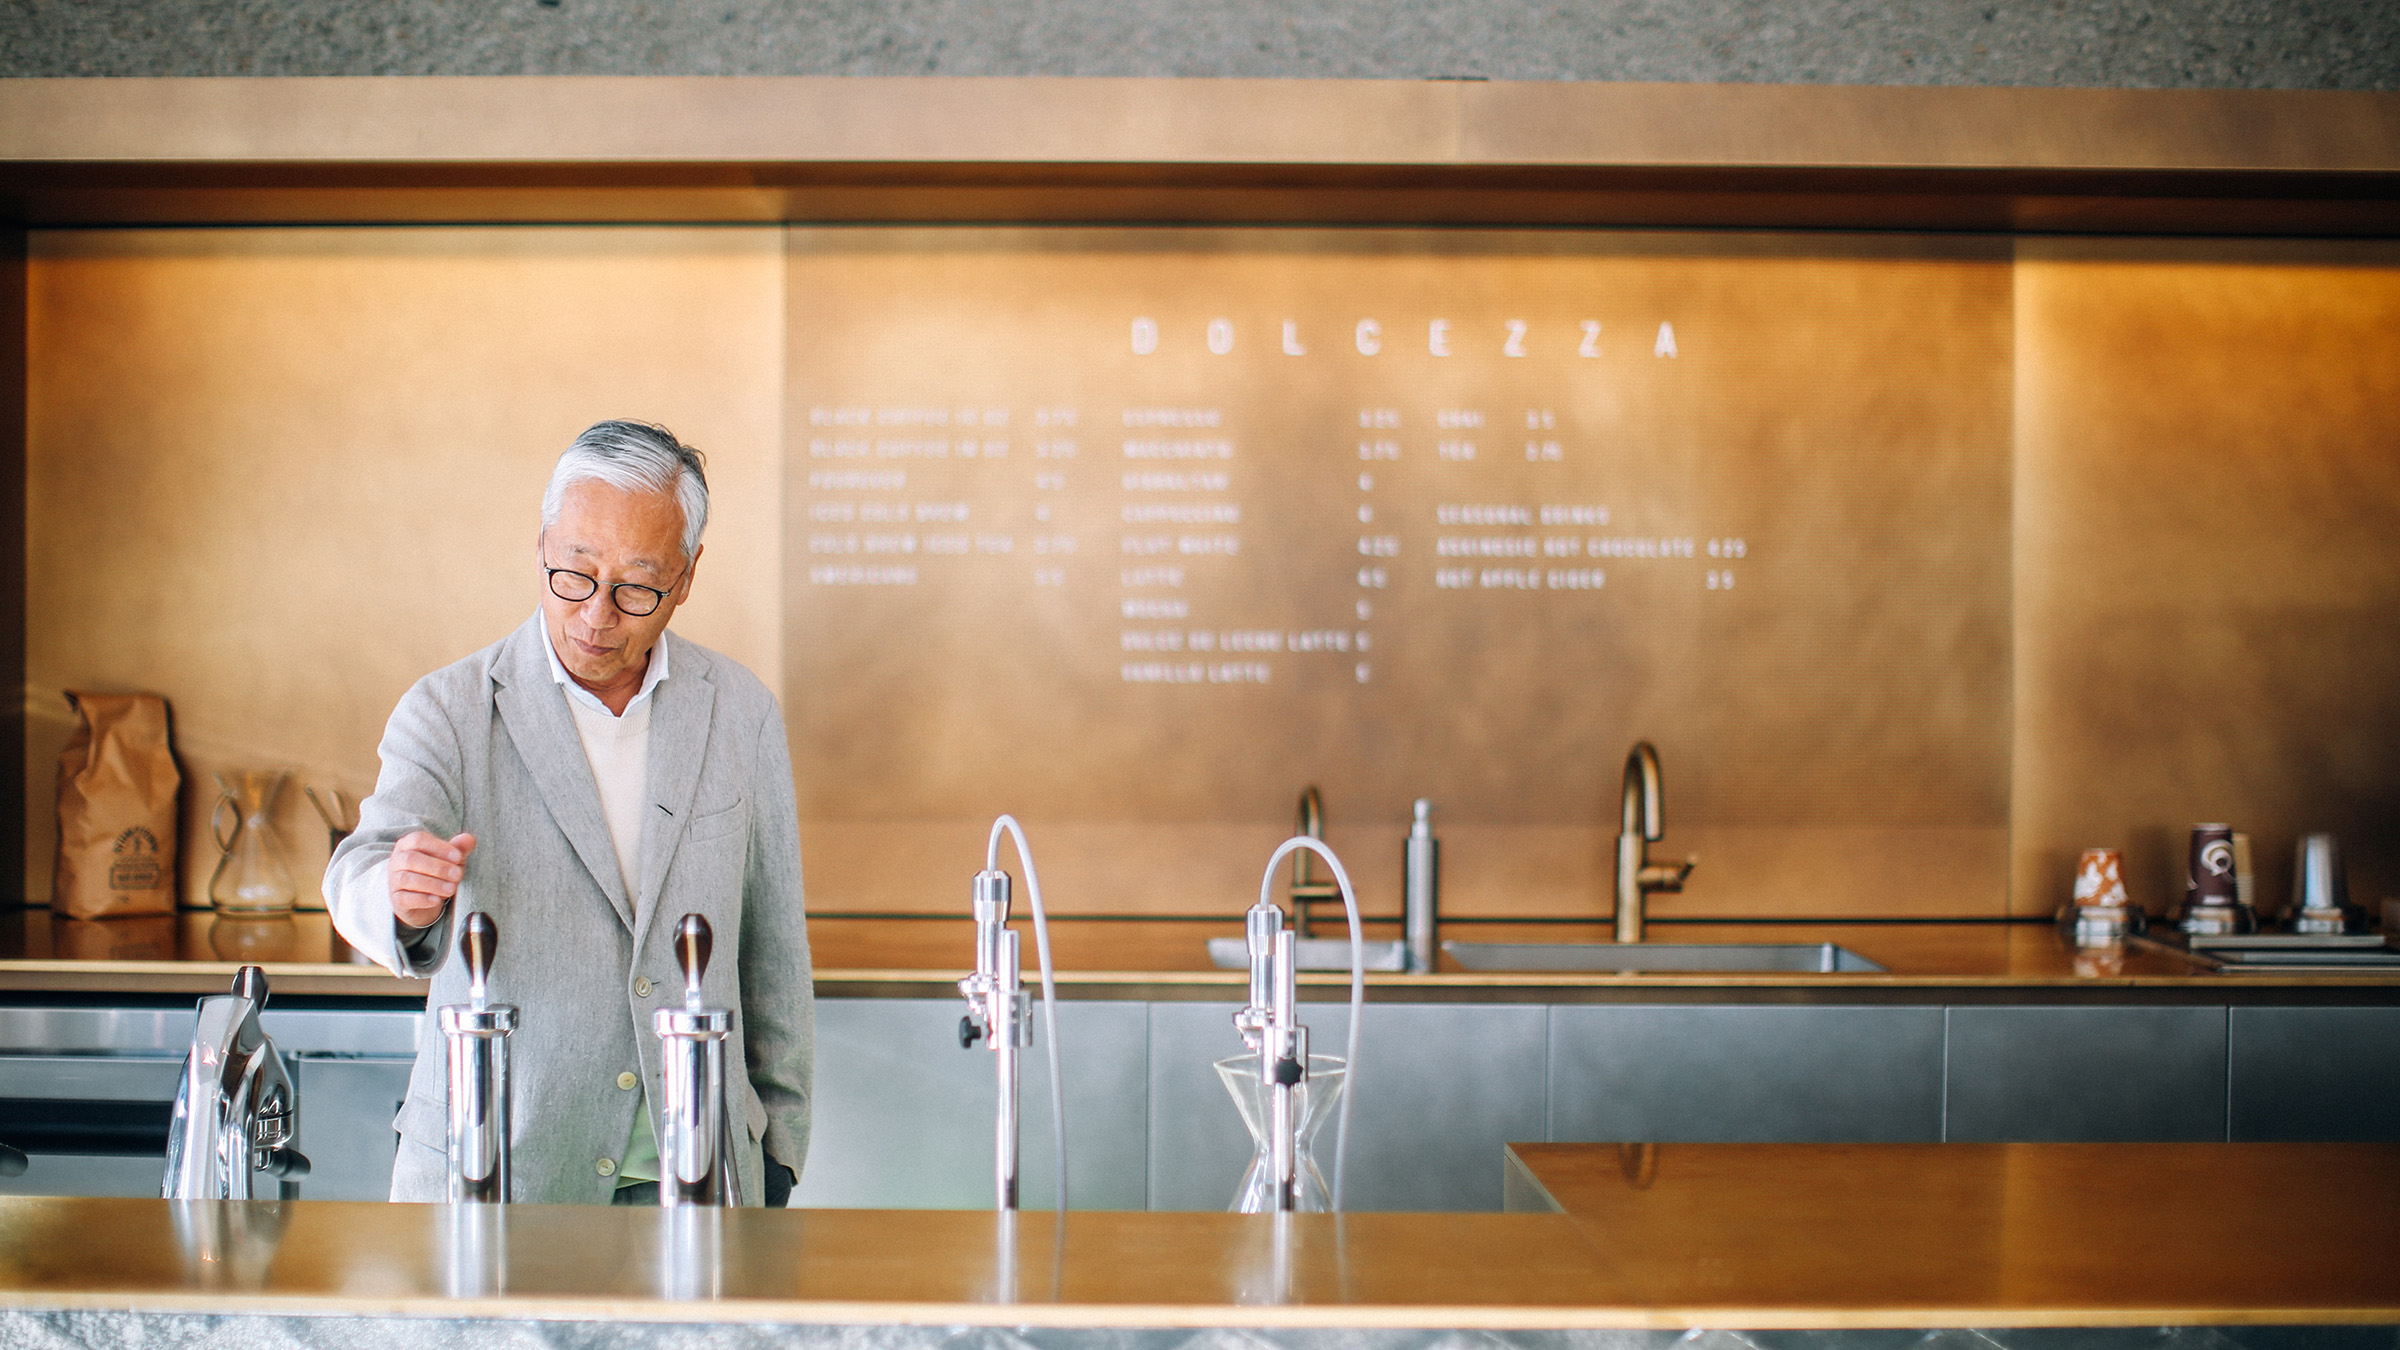 instagram is killing the way we experience art in museums quartz At A Smithsonian Museum S New Cafe Hiroshi Sugimoto S Coffee Tables Are The Art Quartz